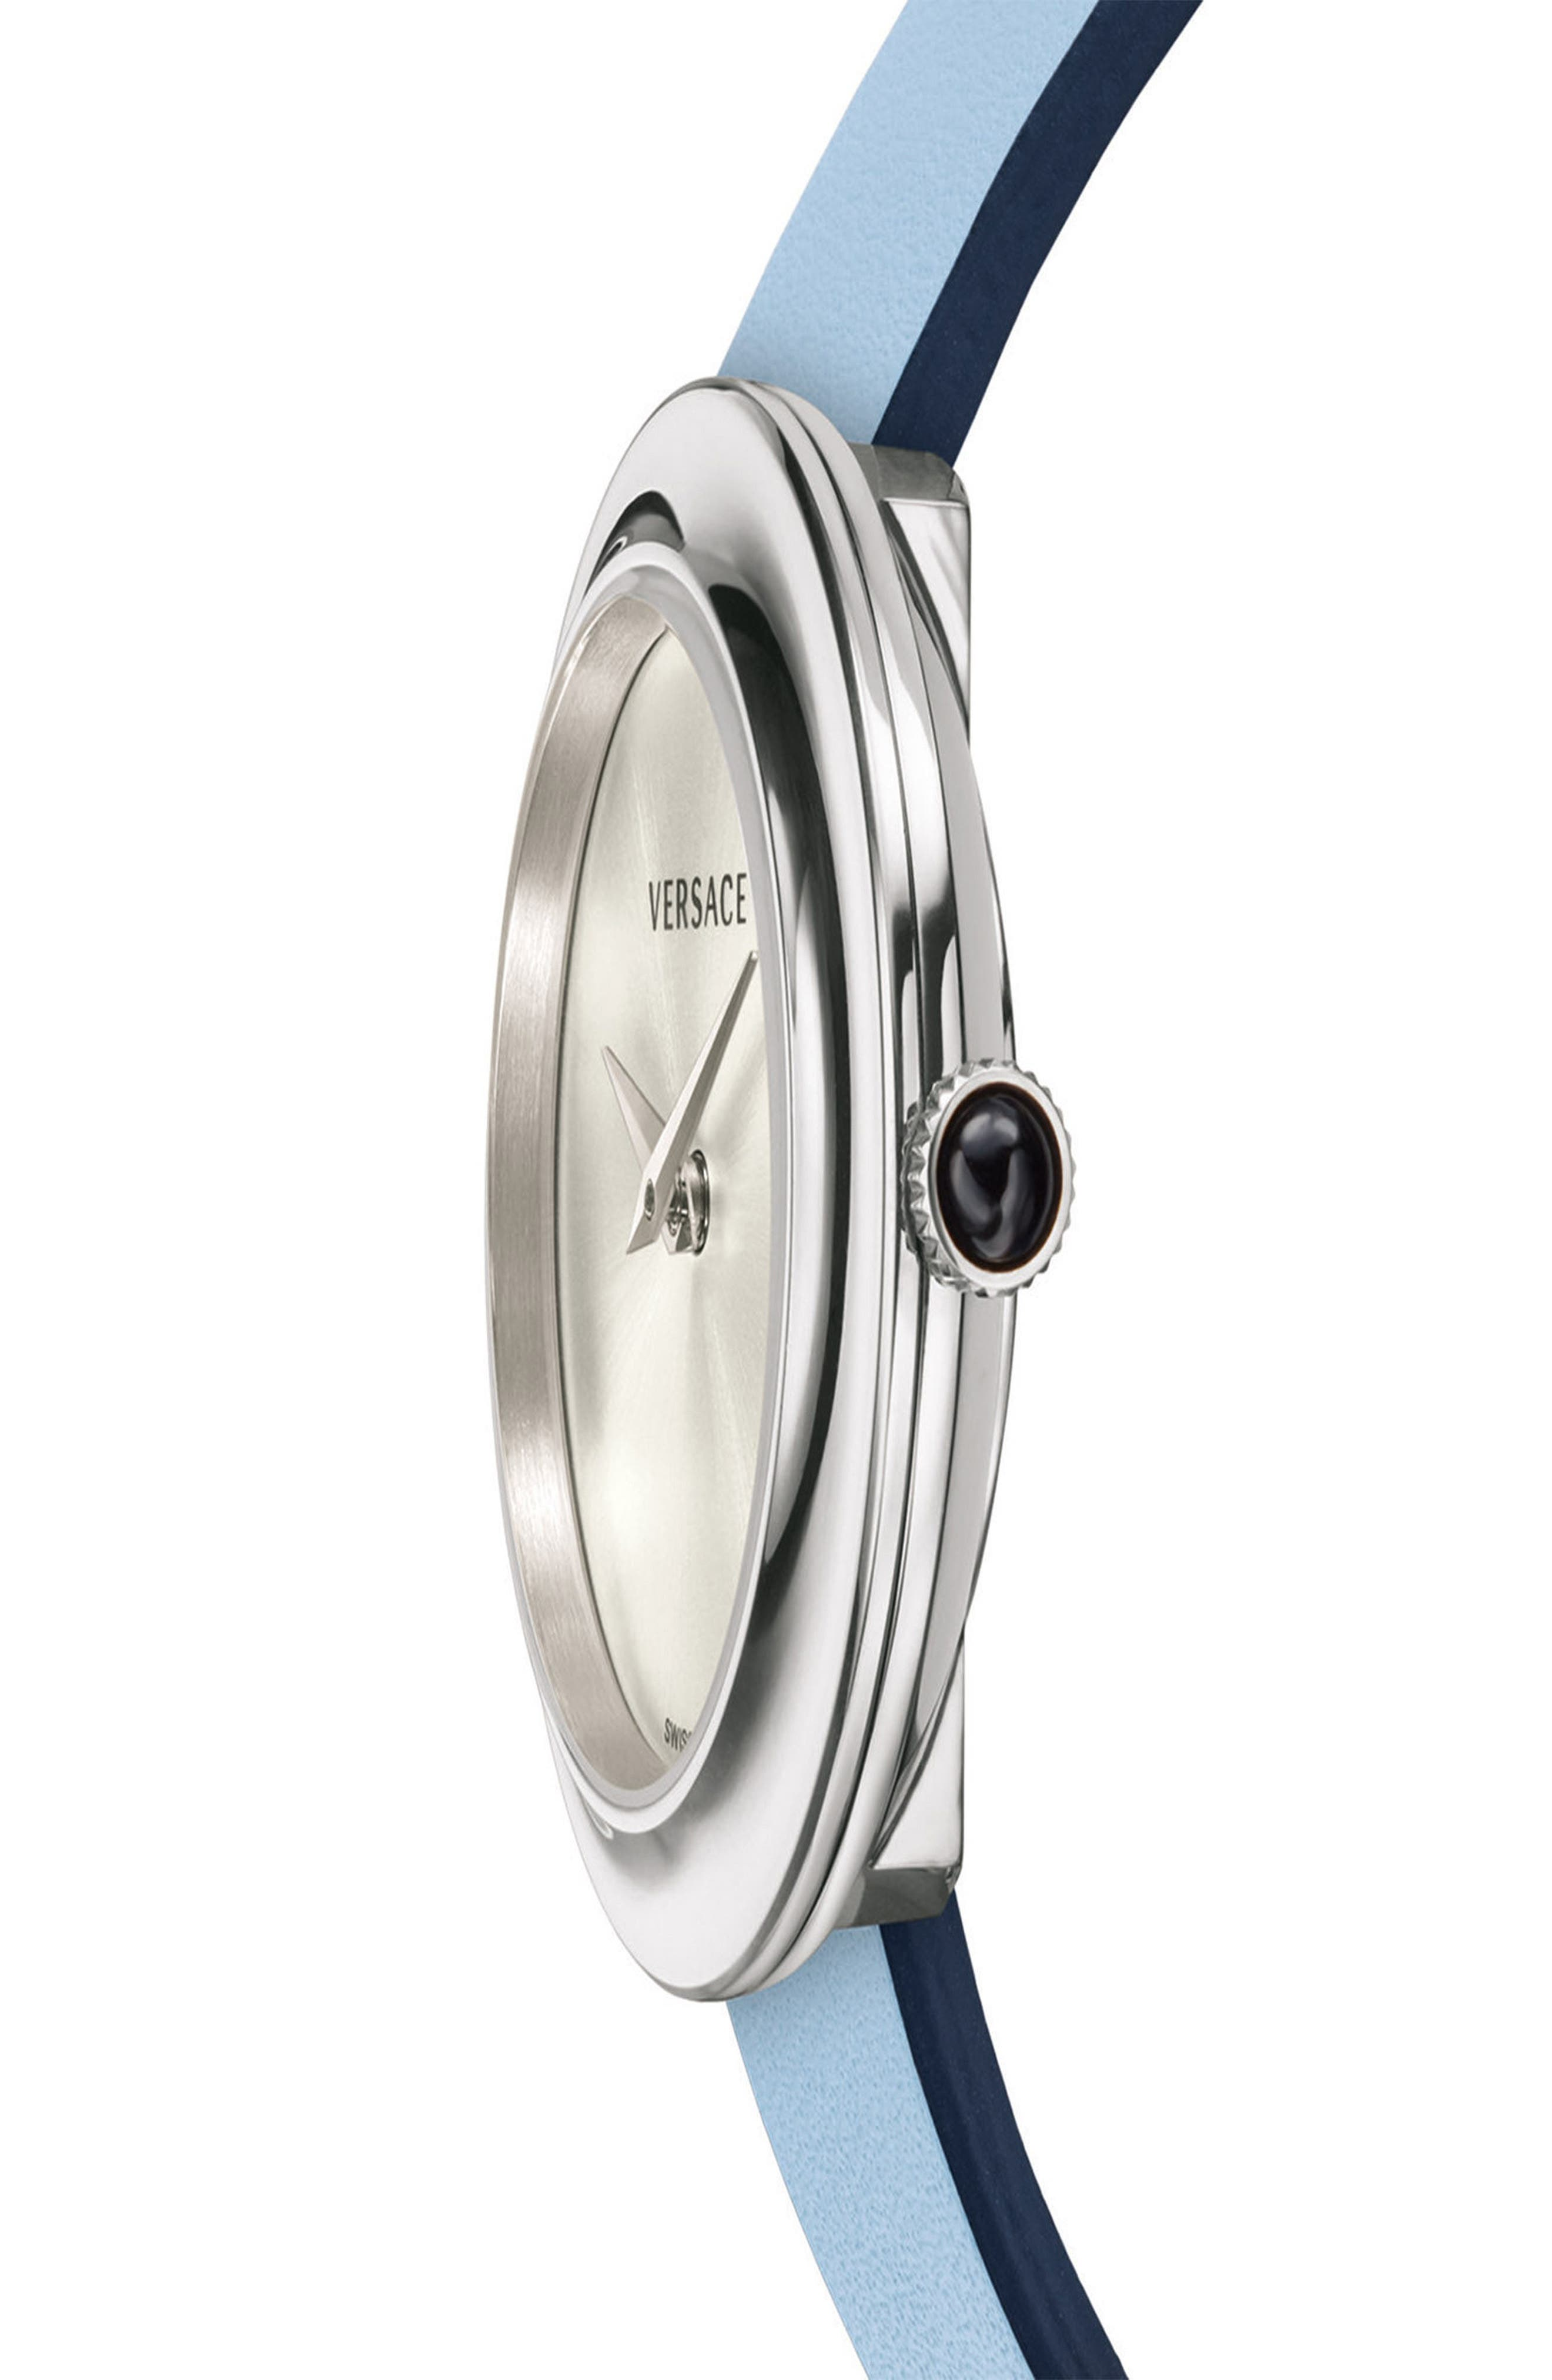 VERSACE, V-Flare Double Wrap Leather Strap Watch, 28mm, Alternate thumbnail 4, color, BLUE/ SILVER/ GOLD